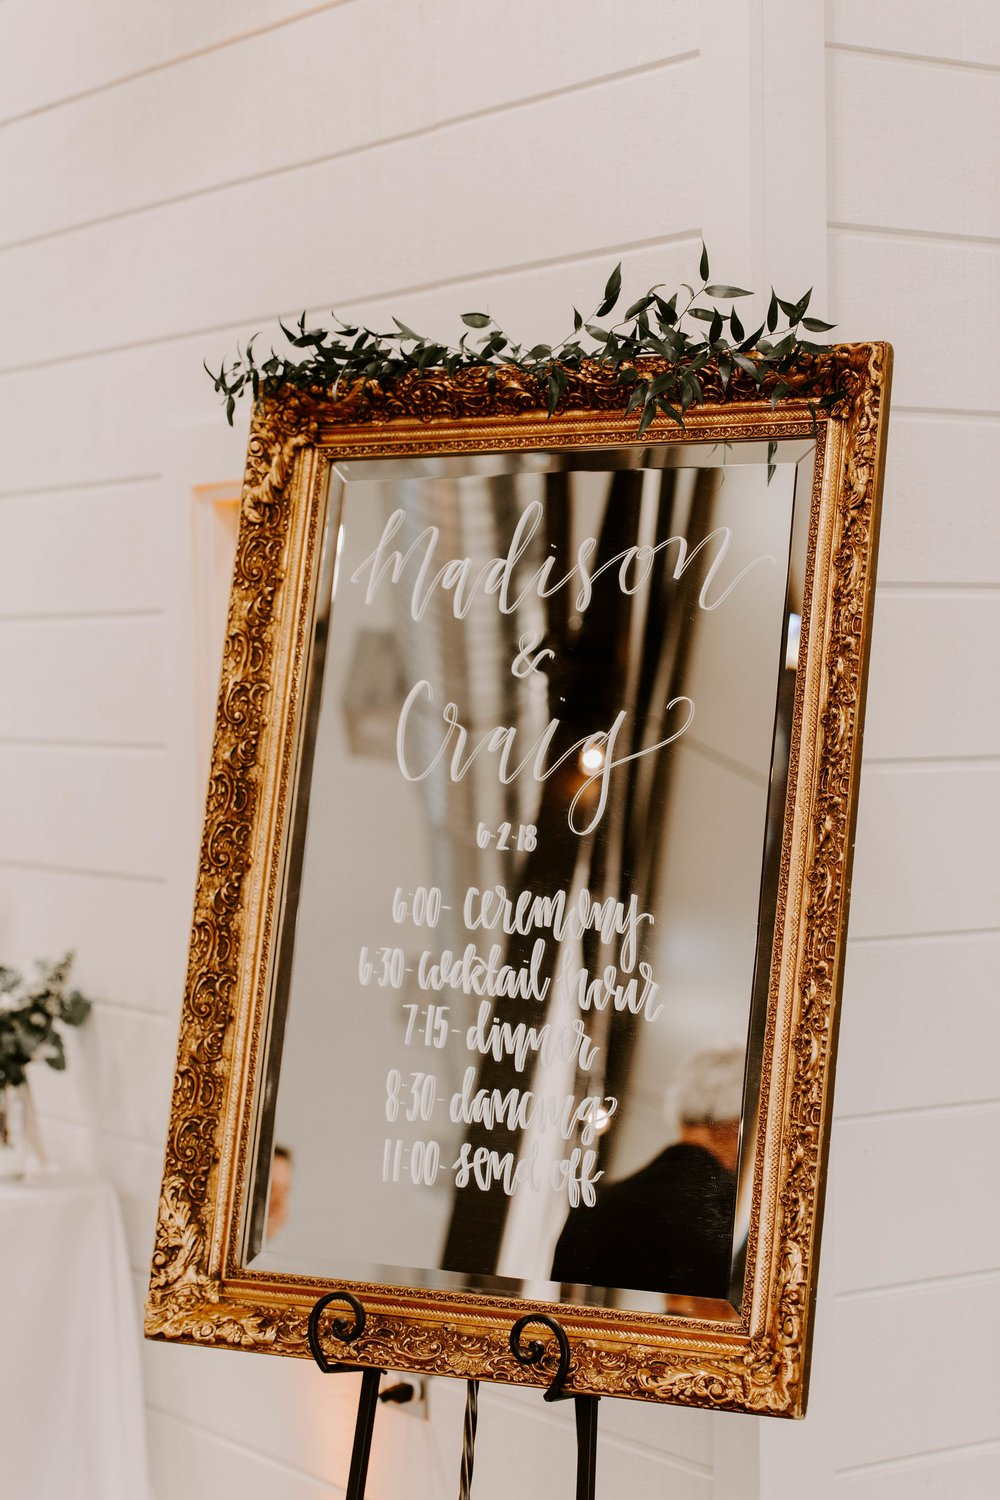 mirror wedding schedule-min.jpg